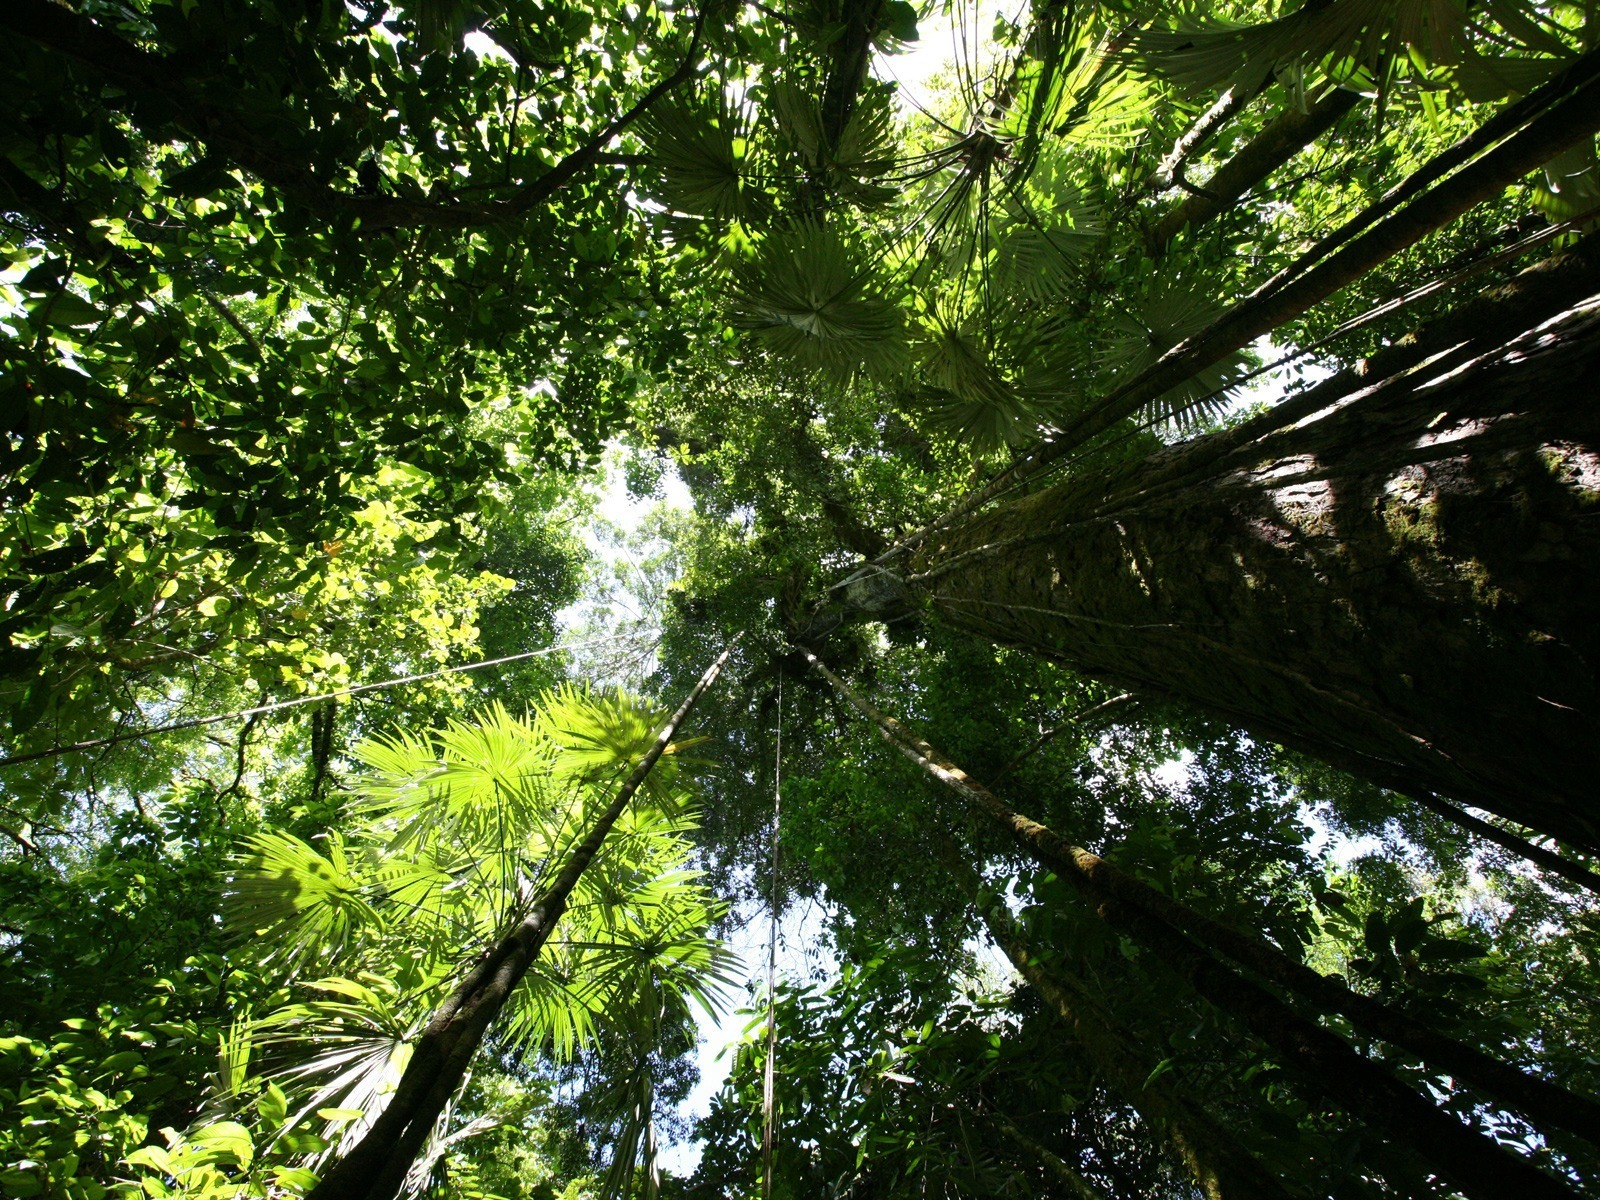 -downloadfiles-wallpapers-1600_1200-rainforest_canopy_wallpaper_plants_nature_wallpaper_1600_1200_1126